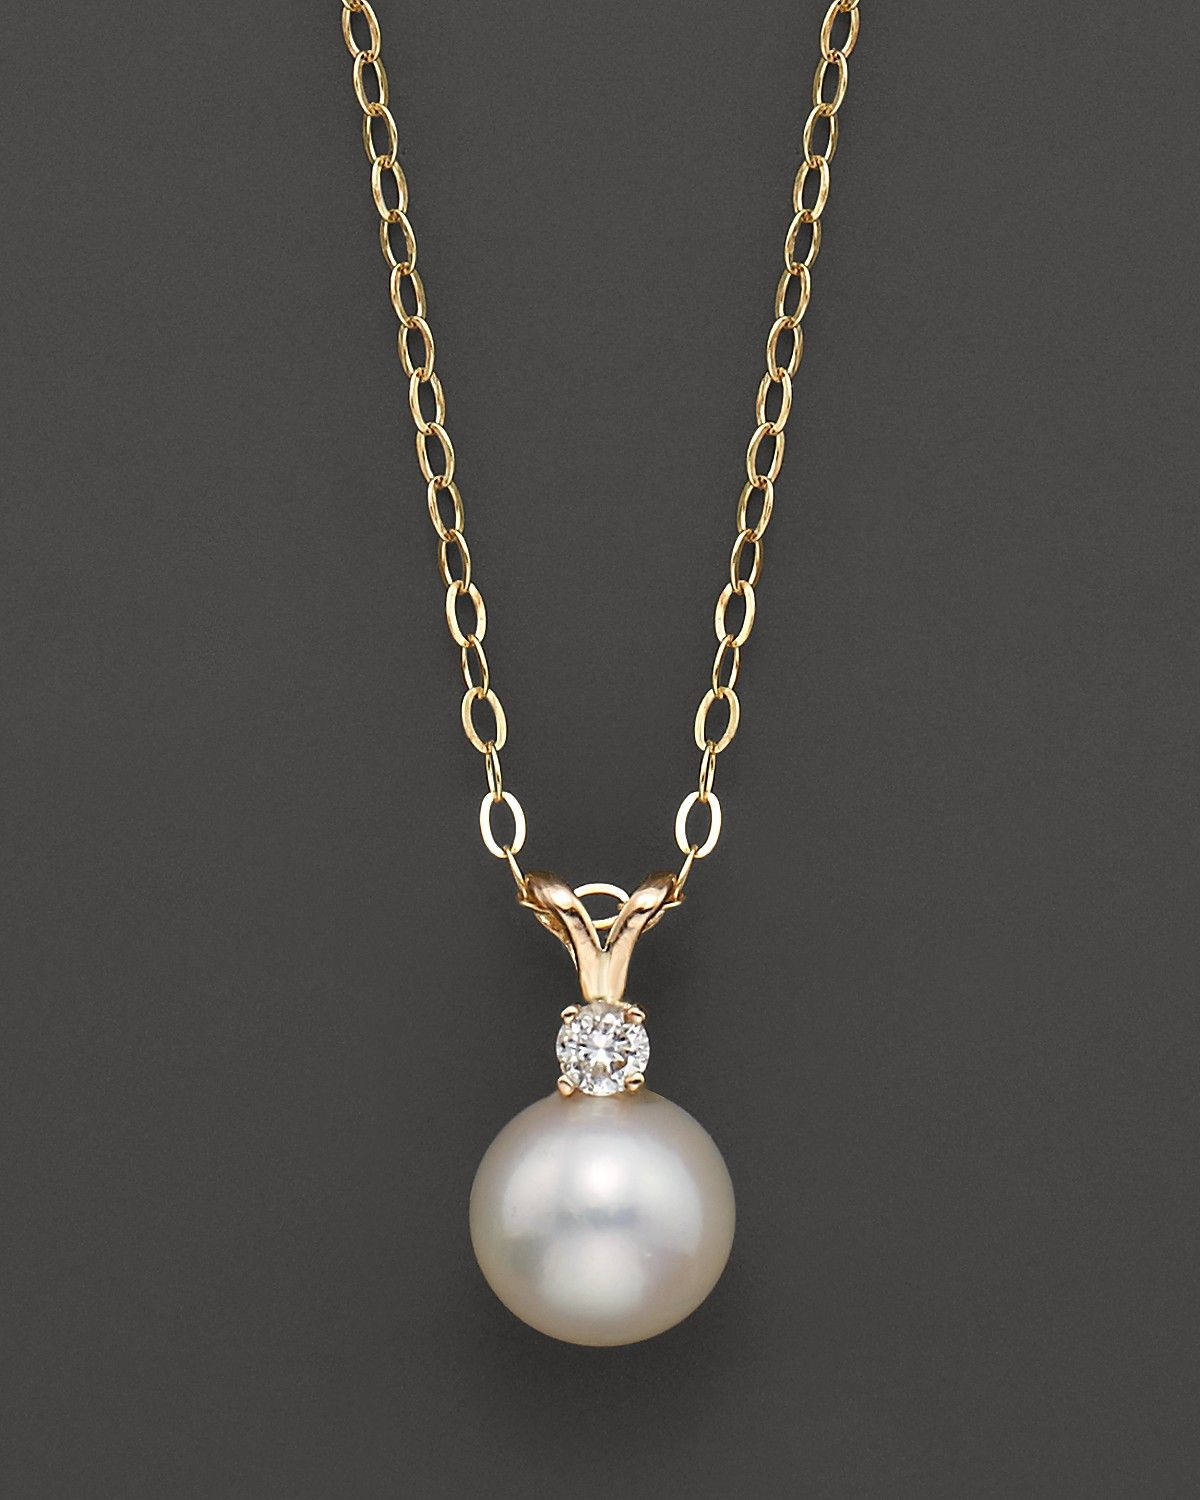 8dbd70a9c6d Cultured Freshwater Pearl and Diamond Pendant Necklace in 14K Yellow ...